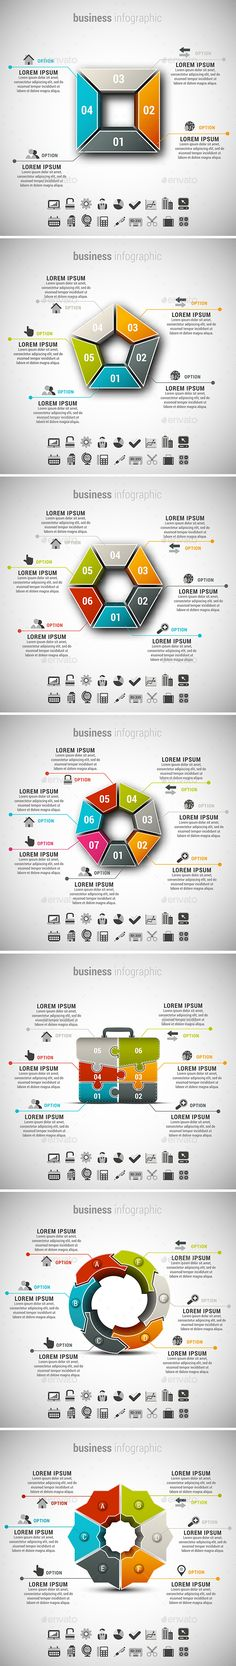 4 in 1 Business Infographics Template Bundle. Download here: http://graphicriver.net/item/4-in-1-business-infographics-bundle/15156834?ref=ksioks